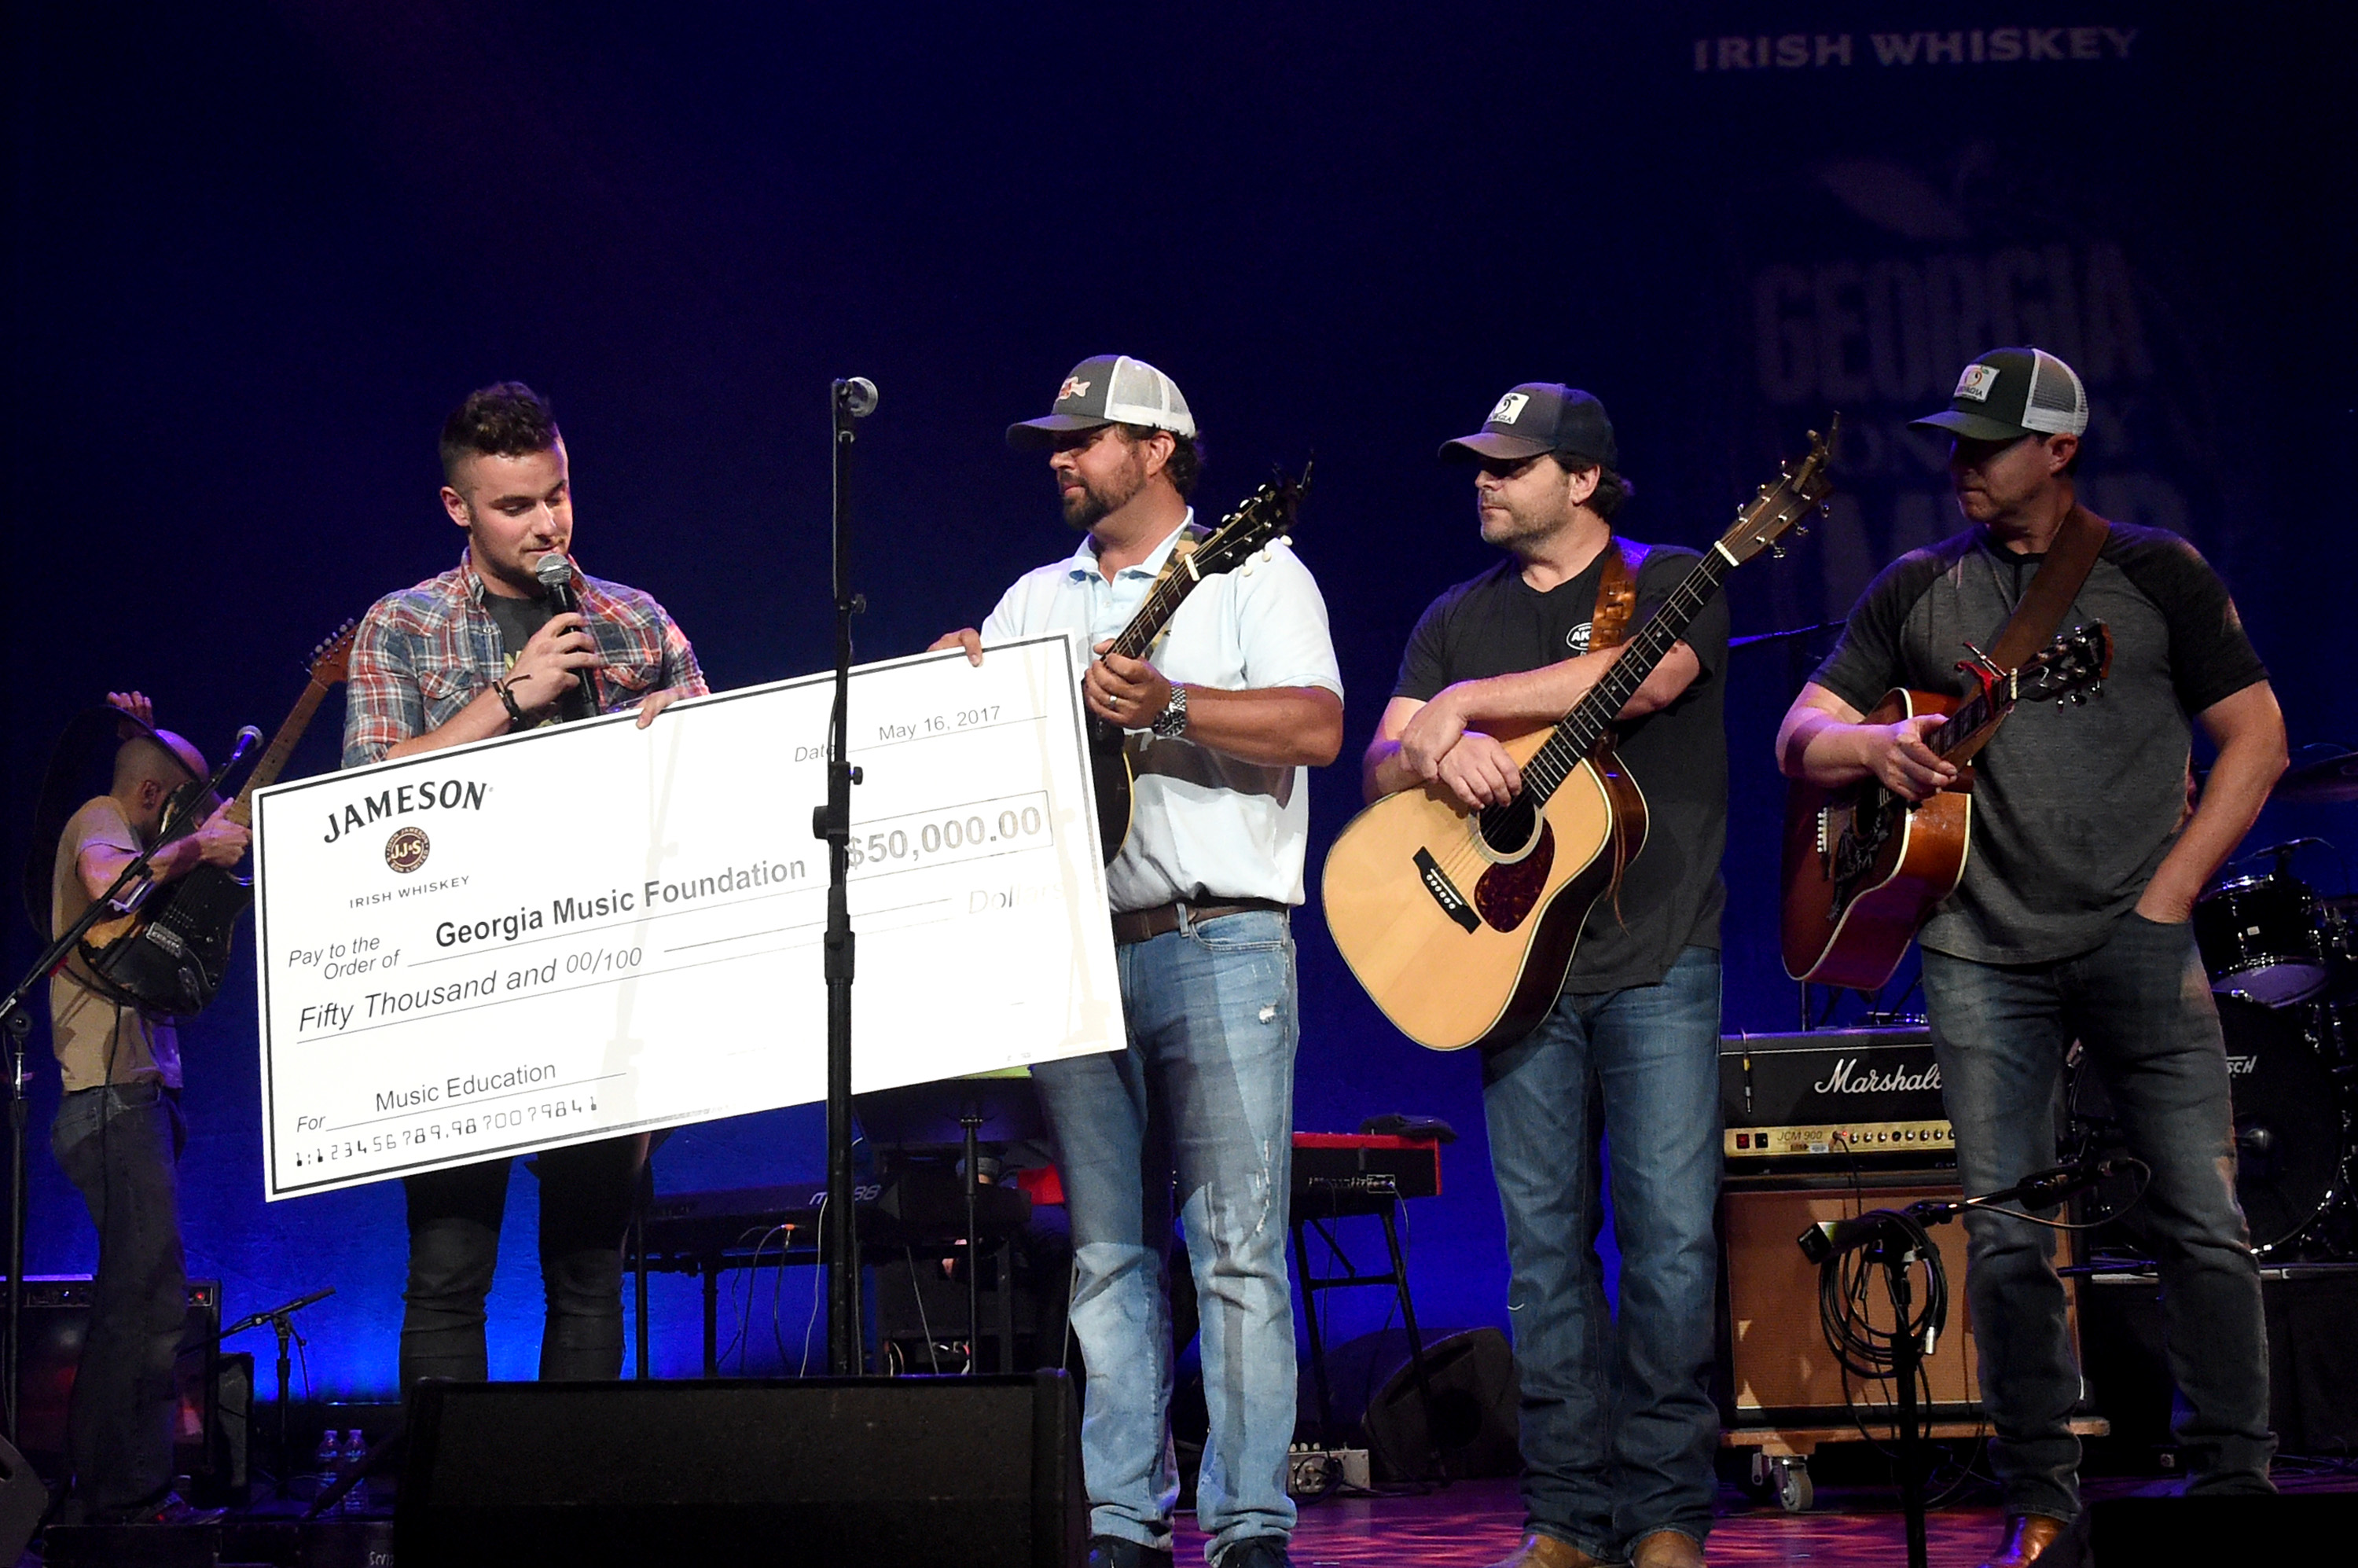 Jameson Brand Ambassador Gary Feeney presents Dallas Davidson, Rhett Akins, and Ben Hayslip with a check onstage during the 4th Annual Georgia On My Mind; Photo by Rick Diamond/Getty Images for Georgia Music Foundation